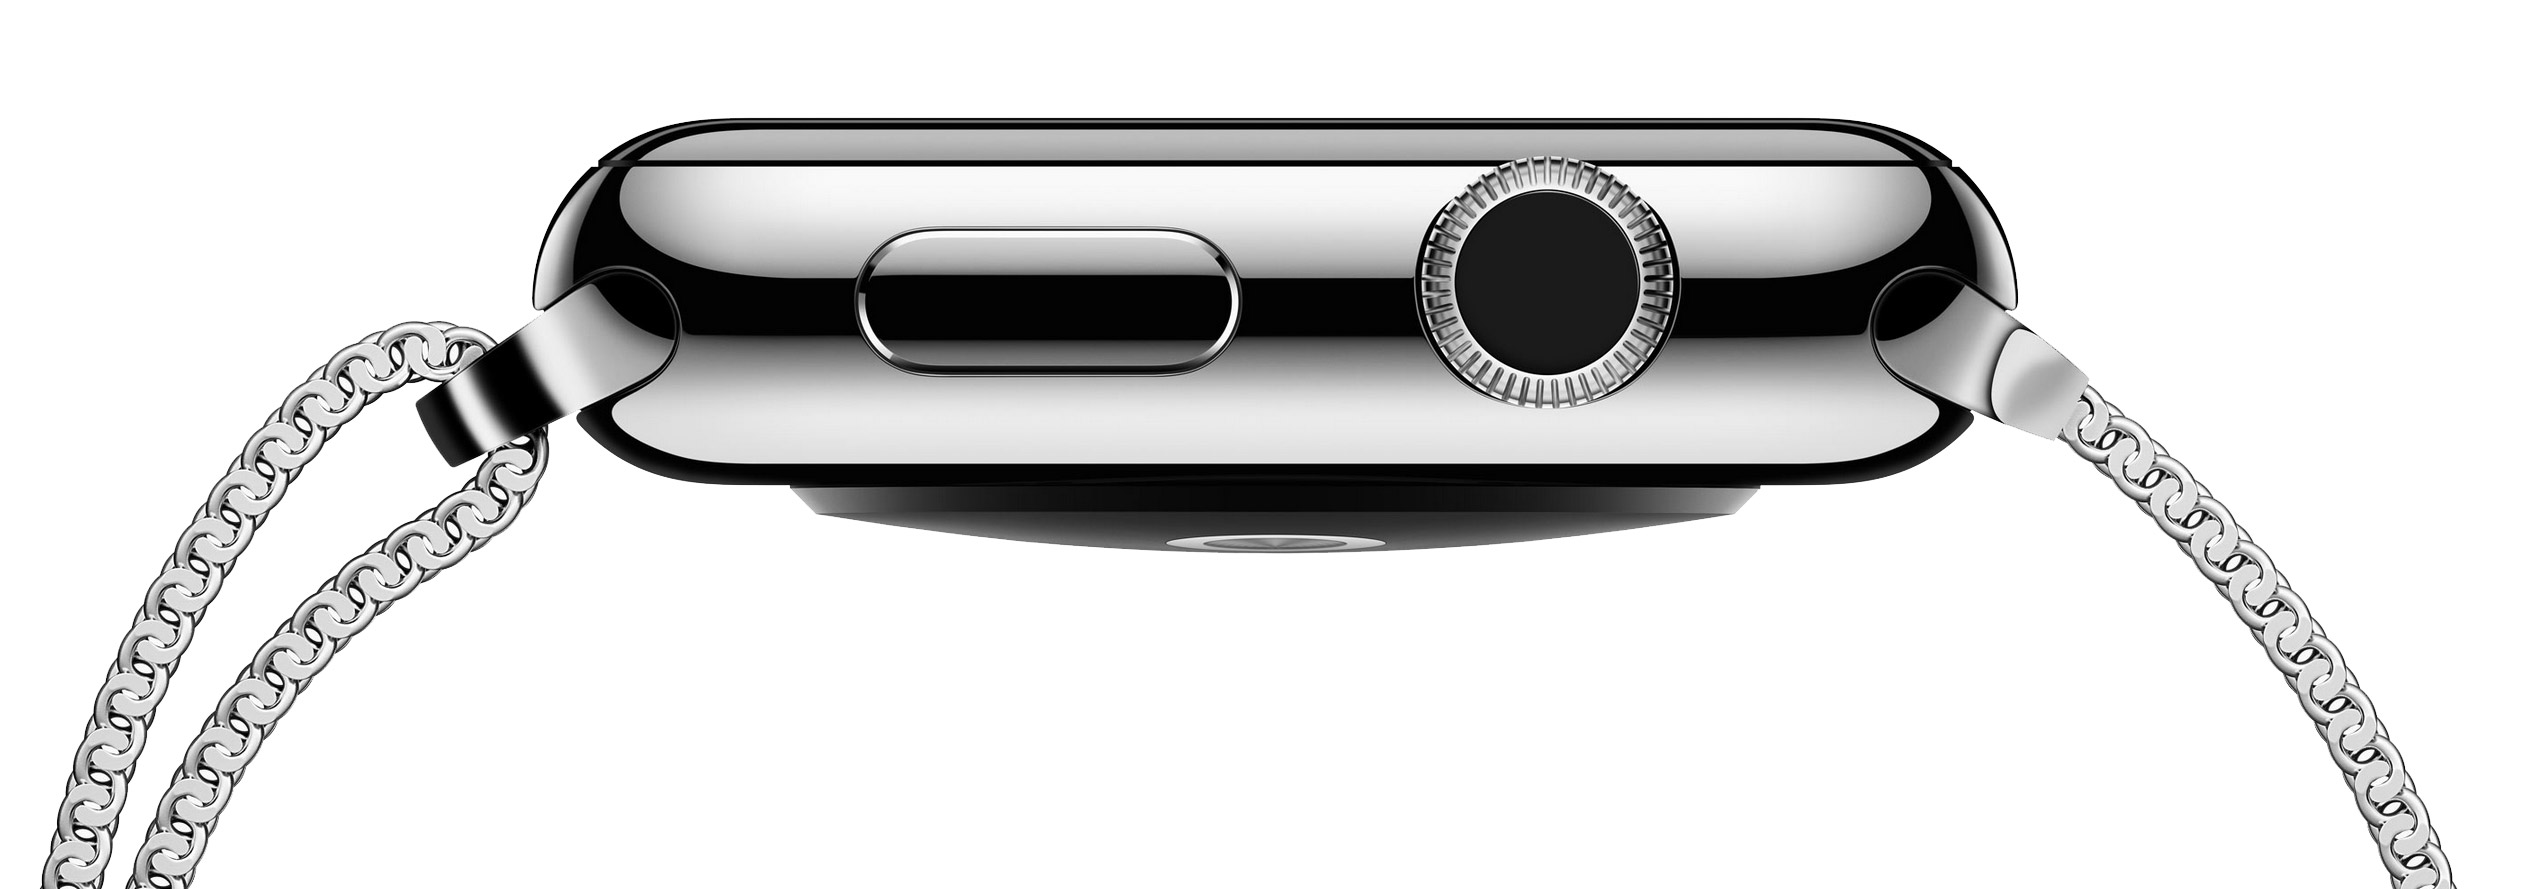 apple-watch-steel-design